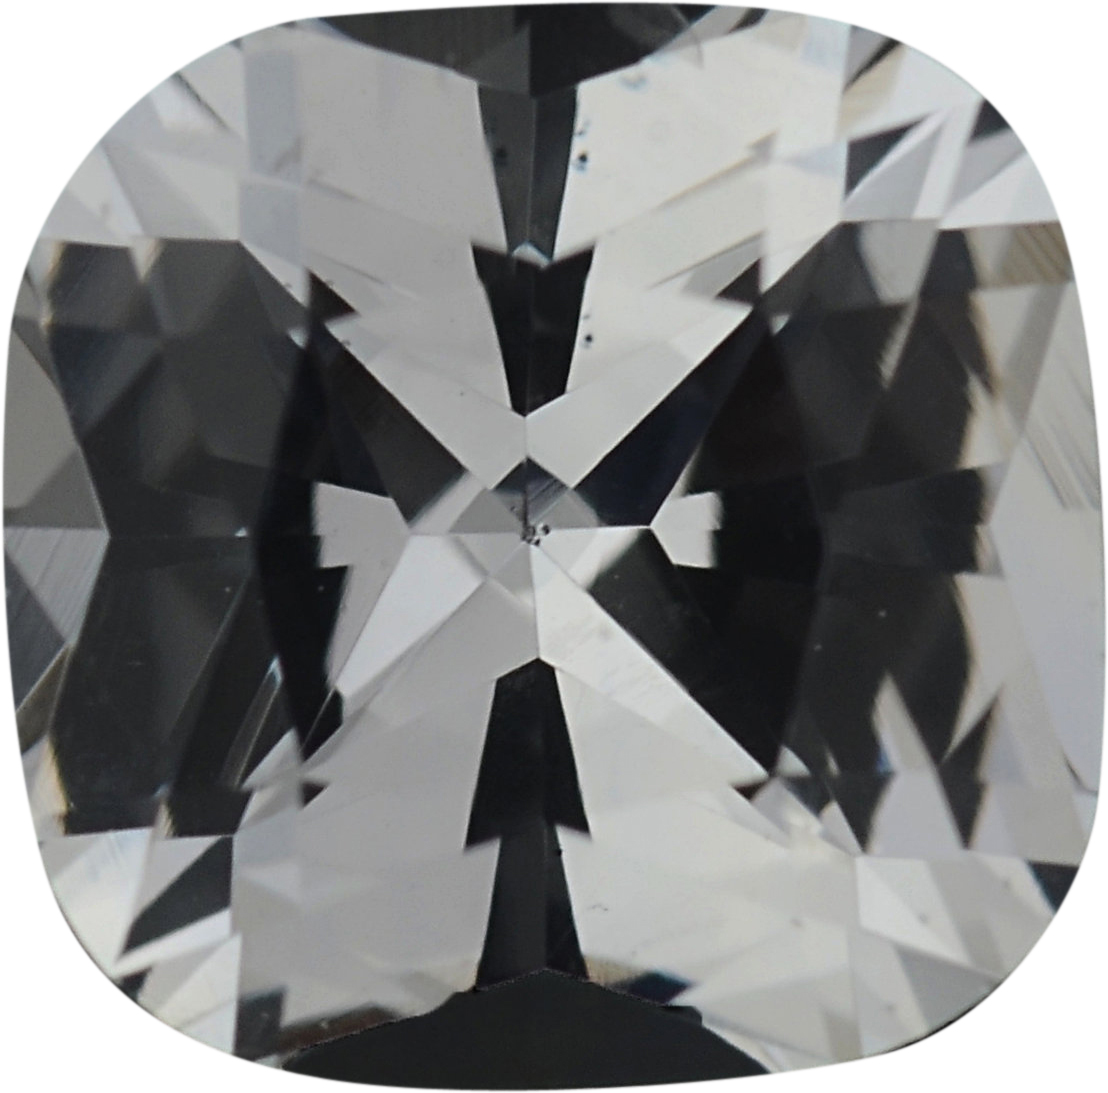 0.9 carats Antique Square Cut Genuine White Sapphire Gem, Near Colorless, Hint of Yellow, 5.63 x 5.57 mm